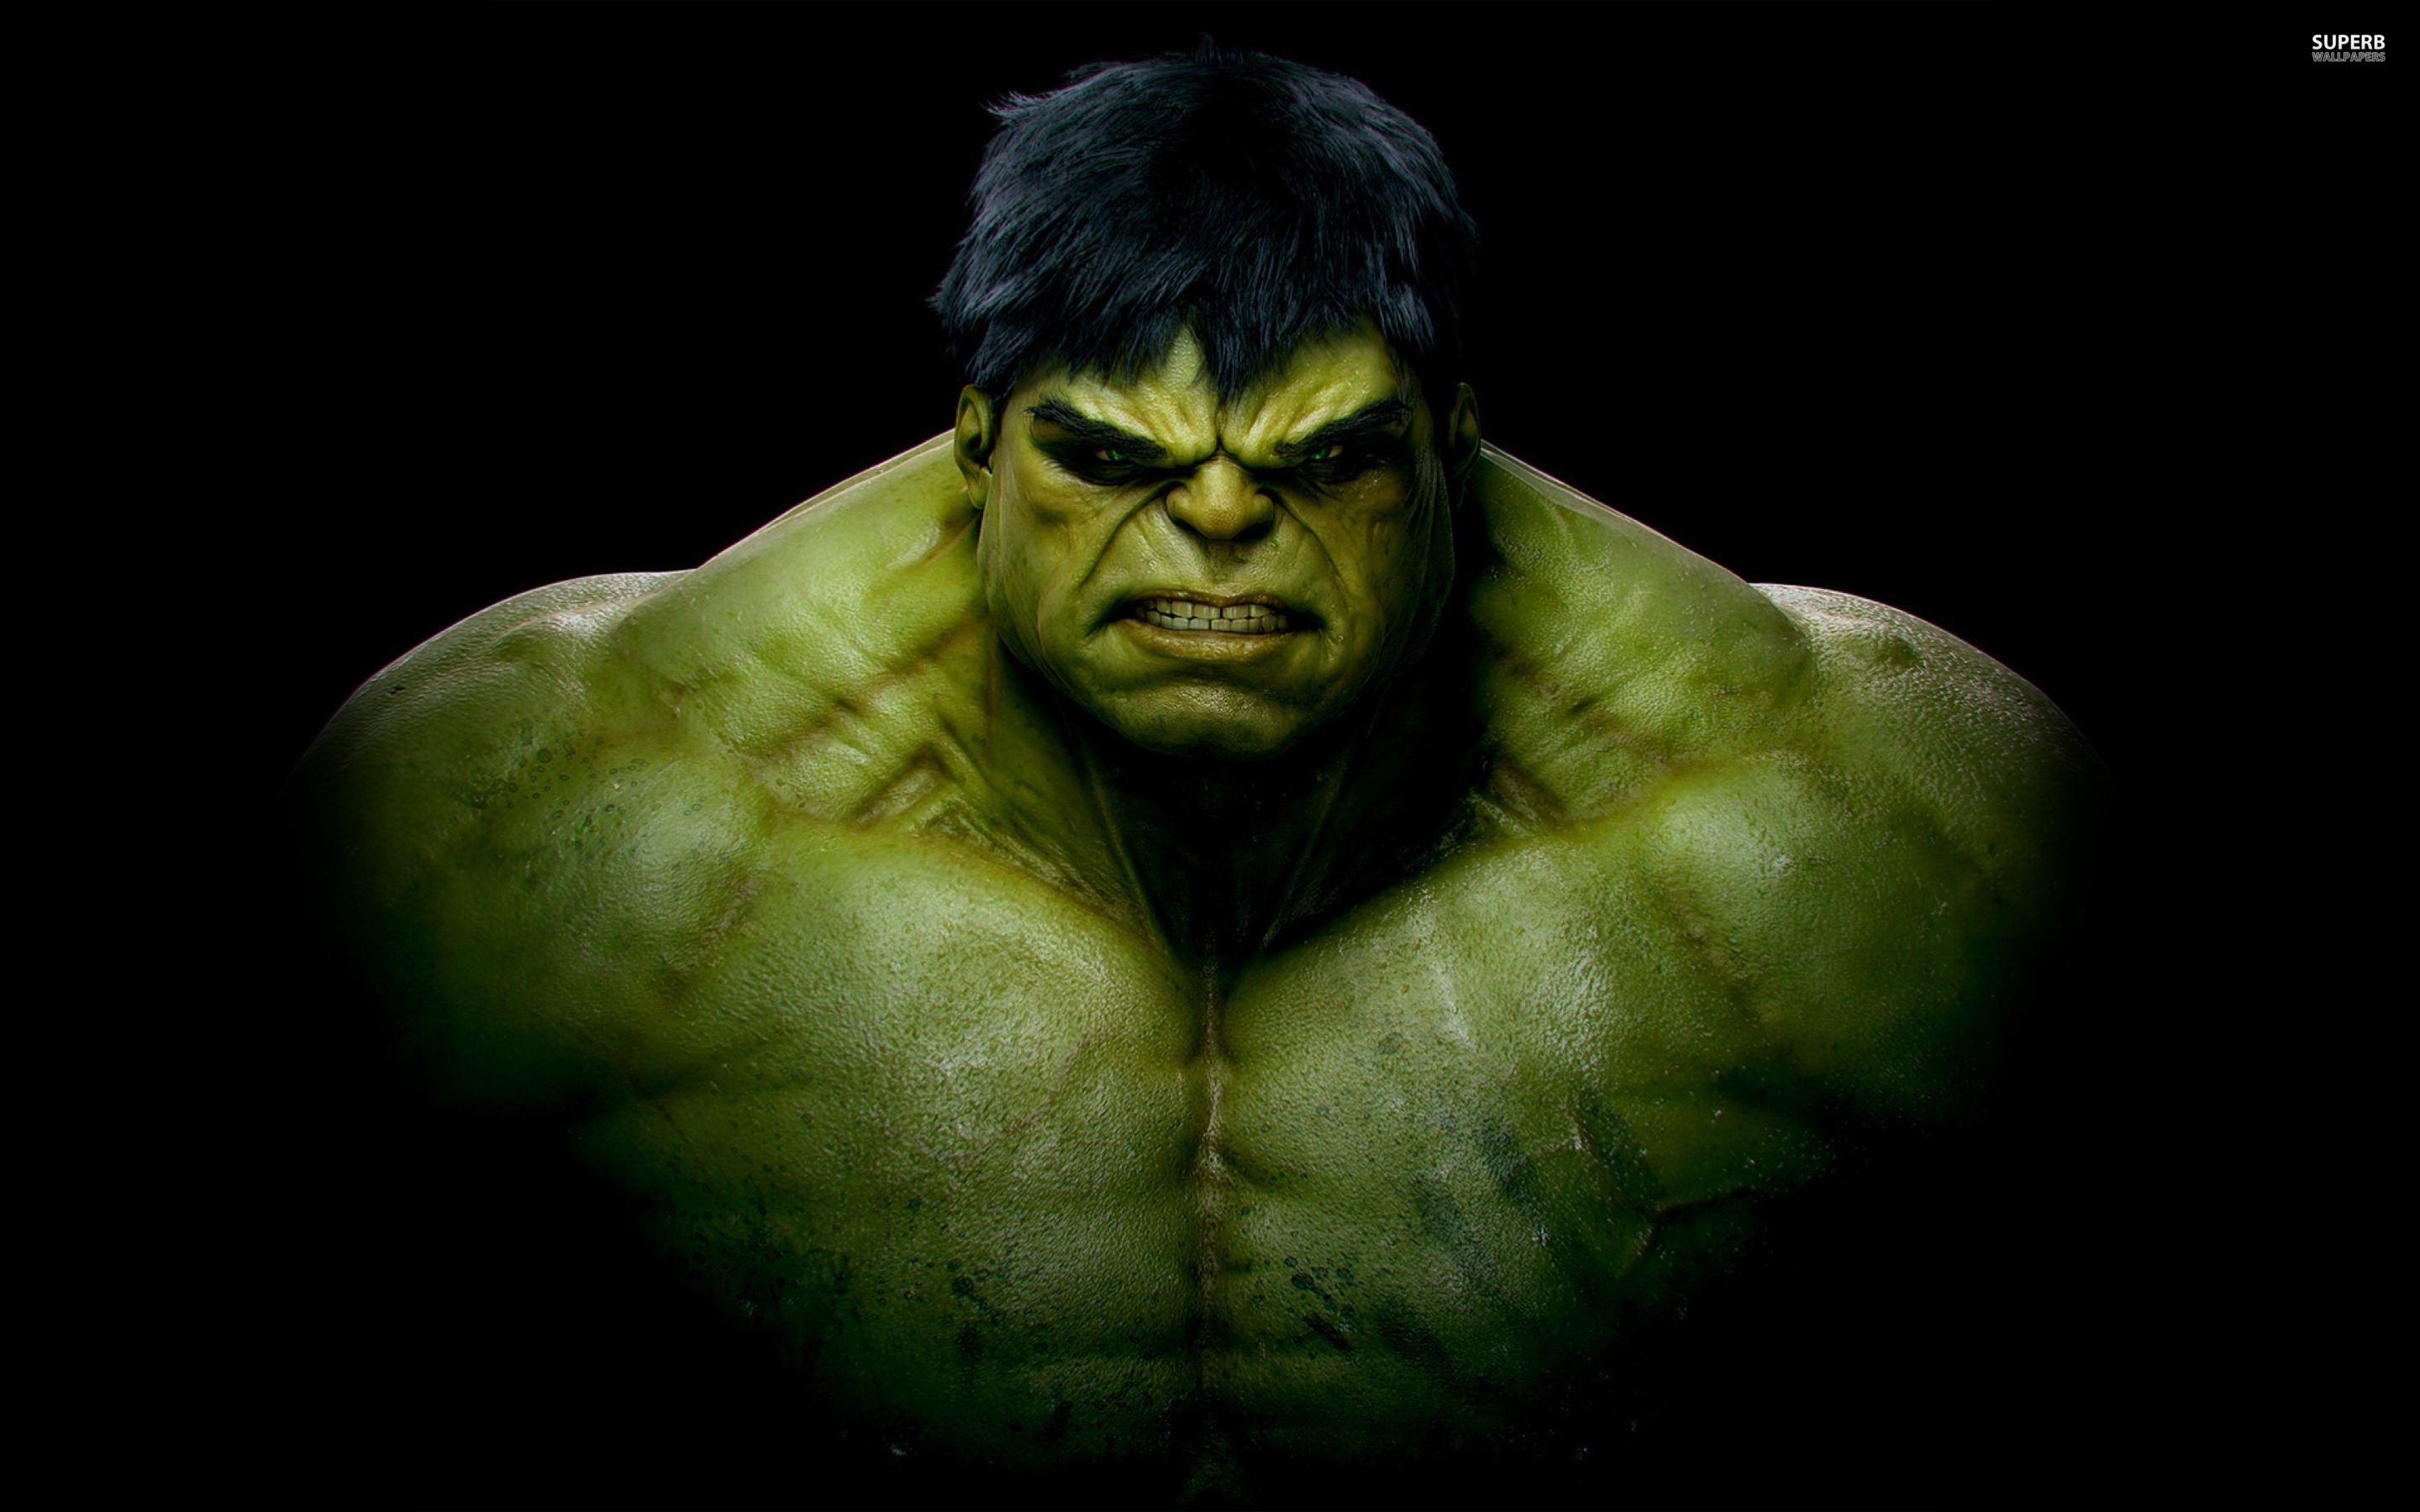 The Incredible Hulk wallpaper 2880x1800